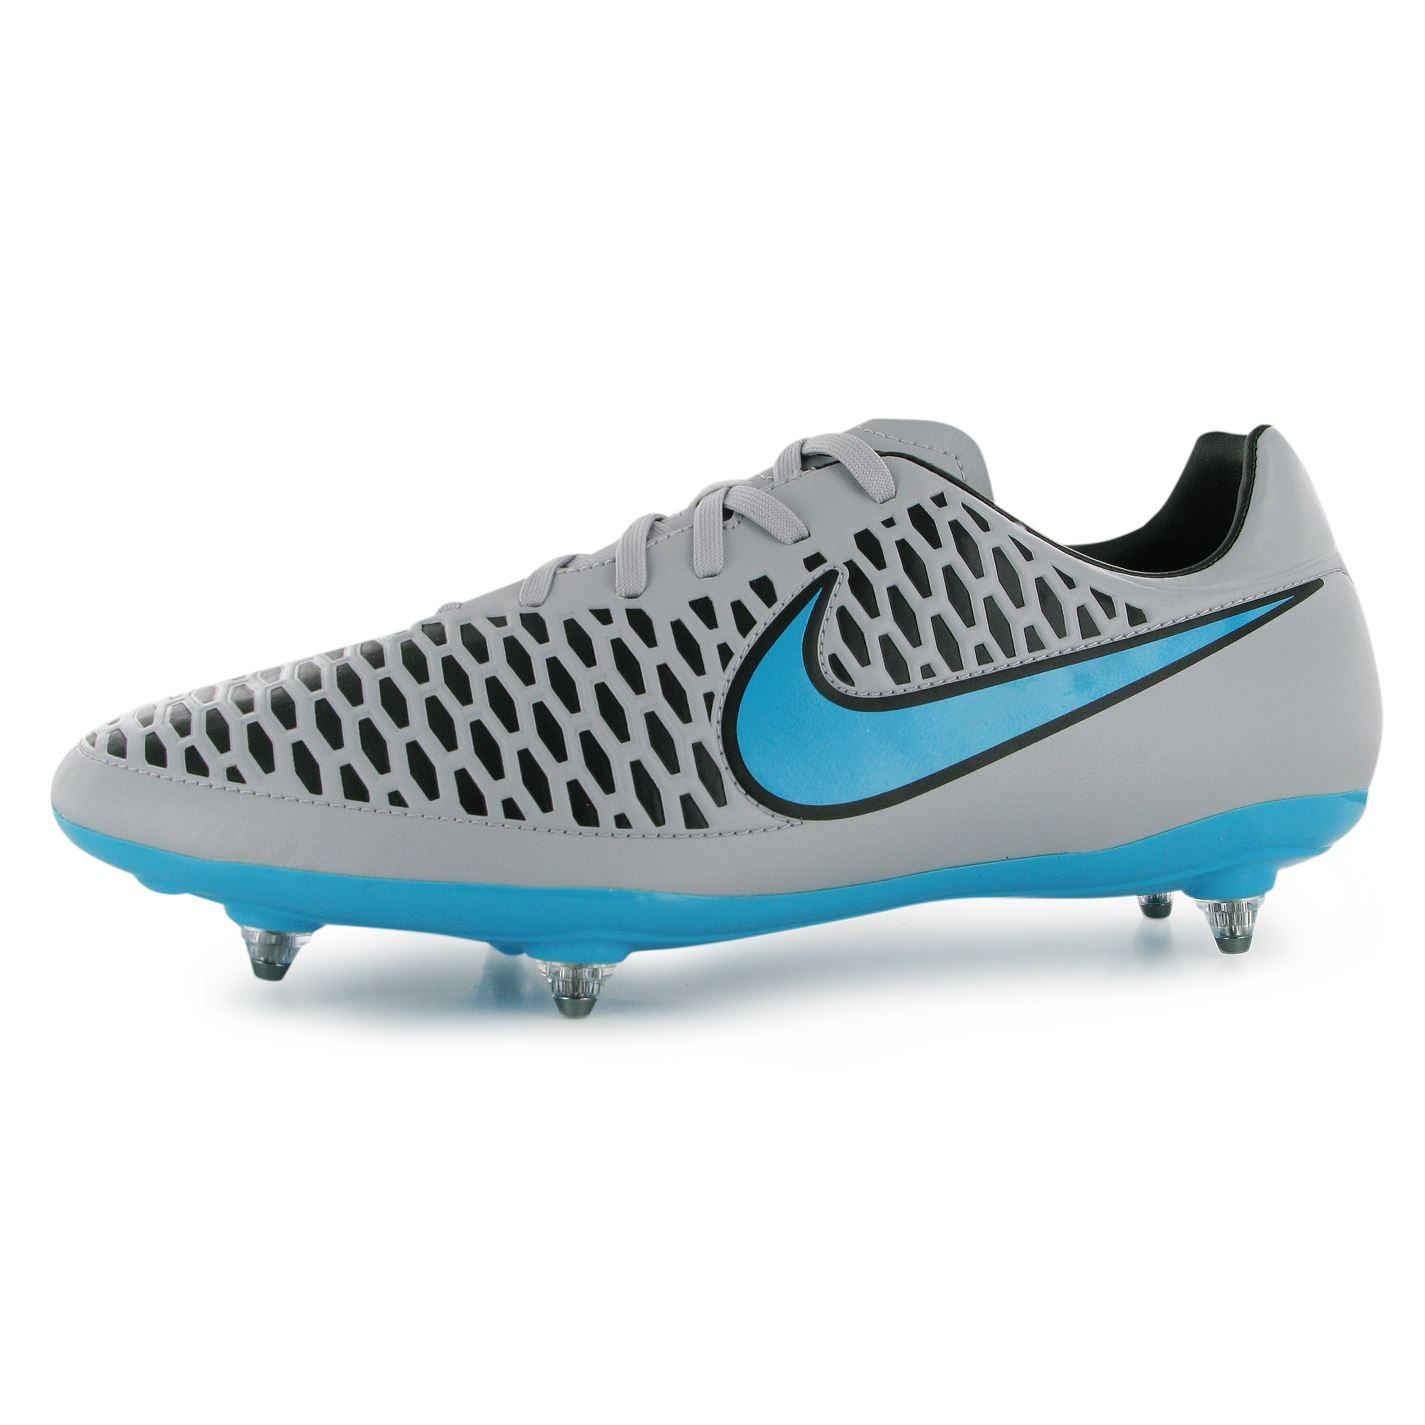 magista football boots grey and blue metal studs - Google Search